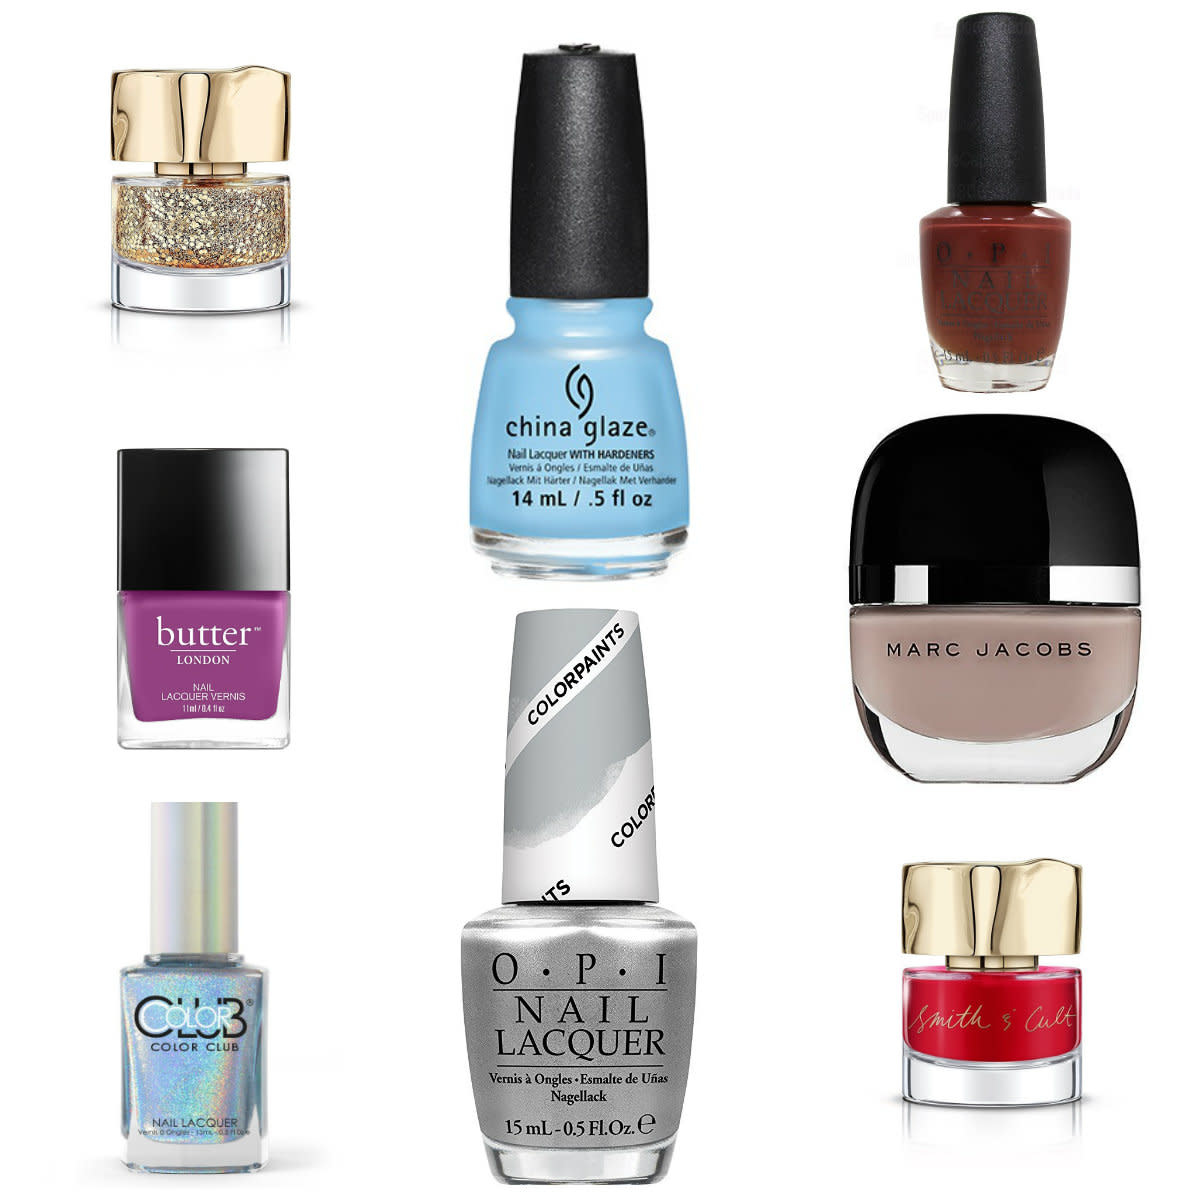 Top 10 Nail Polish Colors for Winter 2016-2017